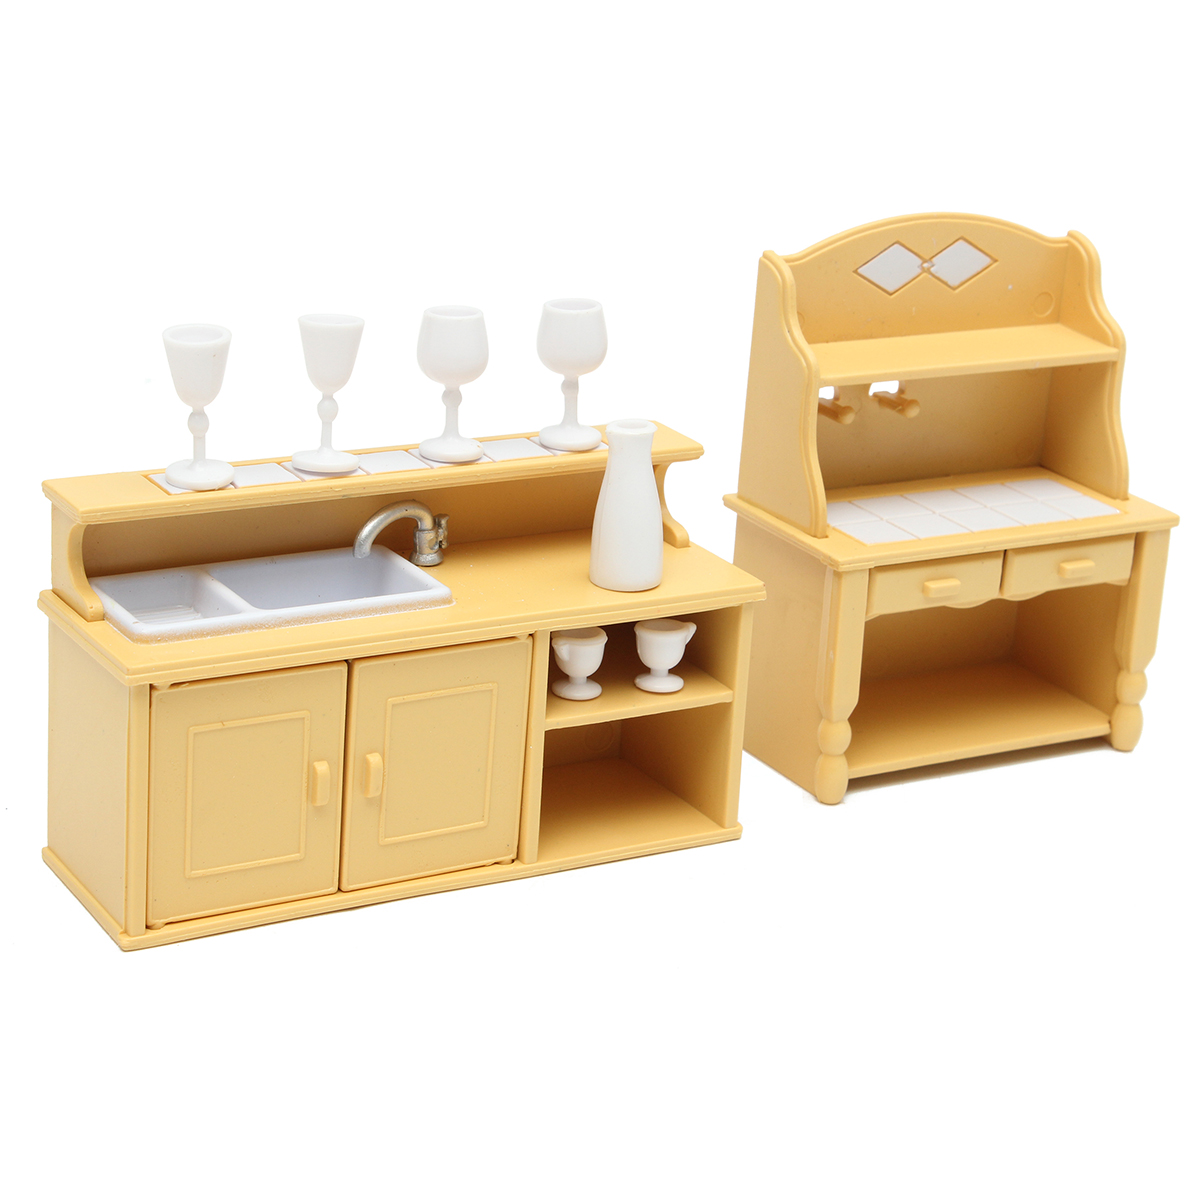 Room Furniture Kit Dollhouses & Play Sets Baby Doll Accessories Kitchen Cabinets Set For Sylvanian Families Calico Critters Dolls